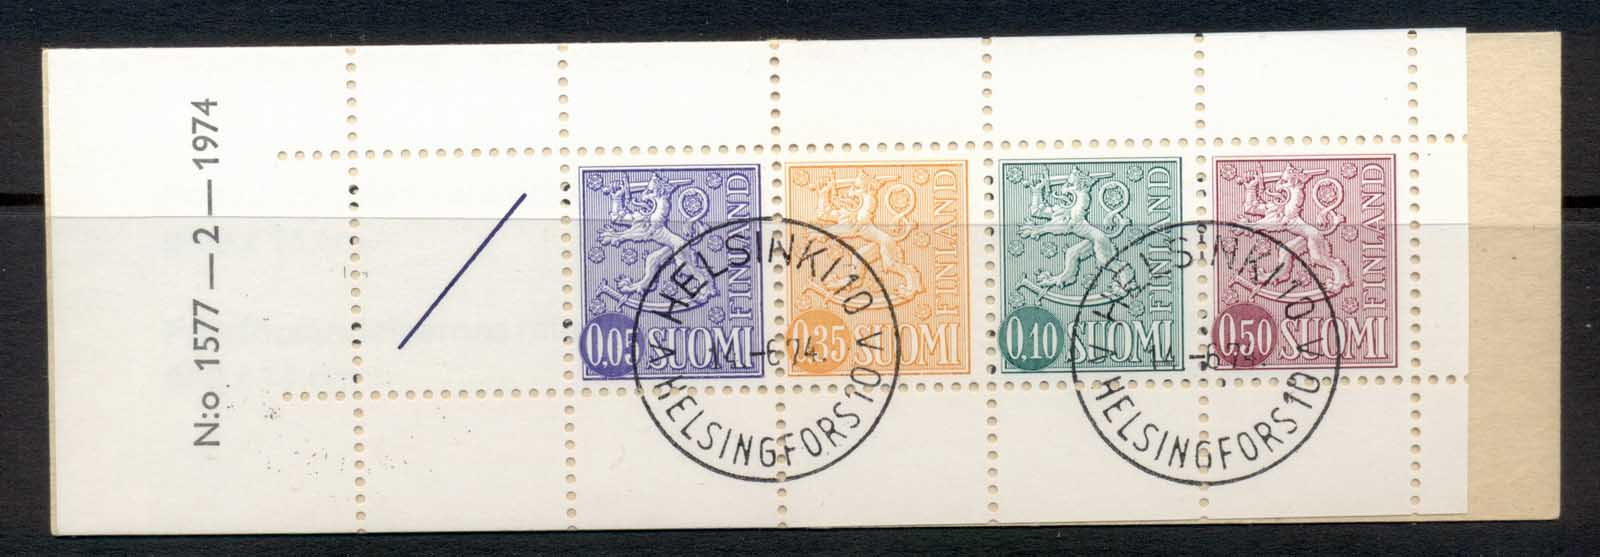 Finland 1968-78 Arms of Finland booklet 1x05,1x35,1x10,1x50, 1 label green cover CTO